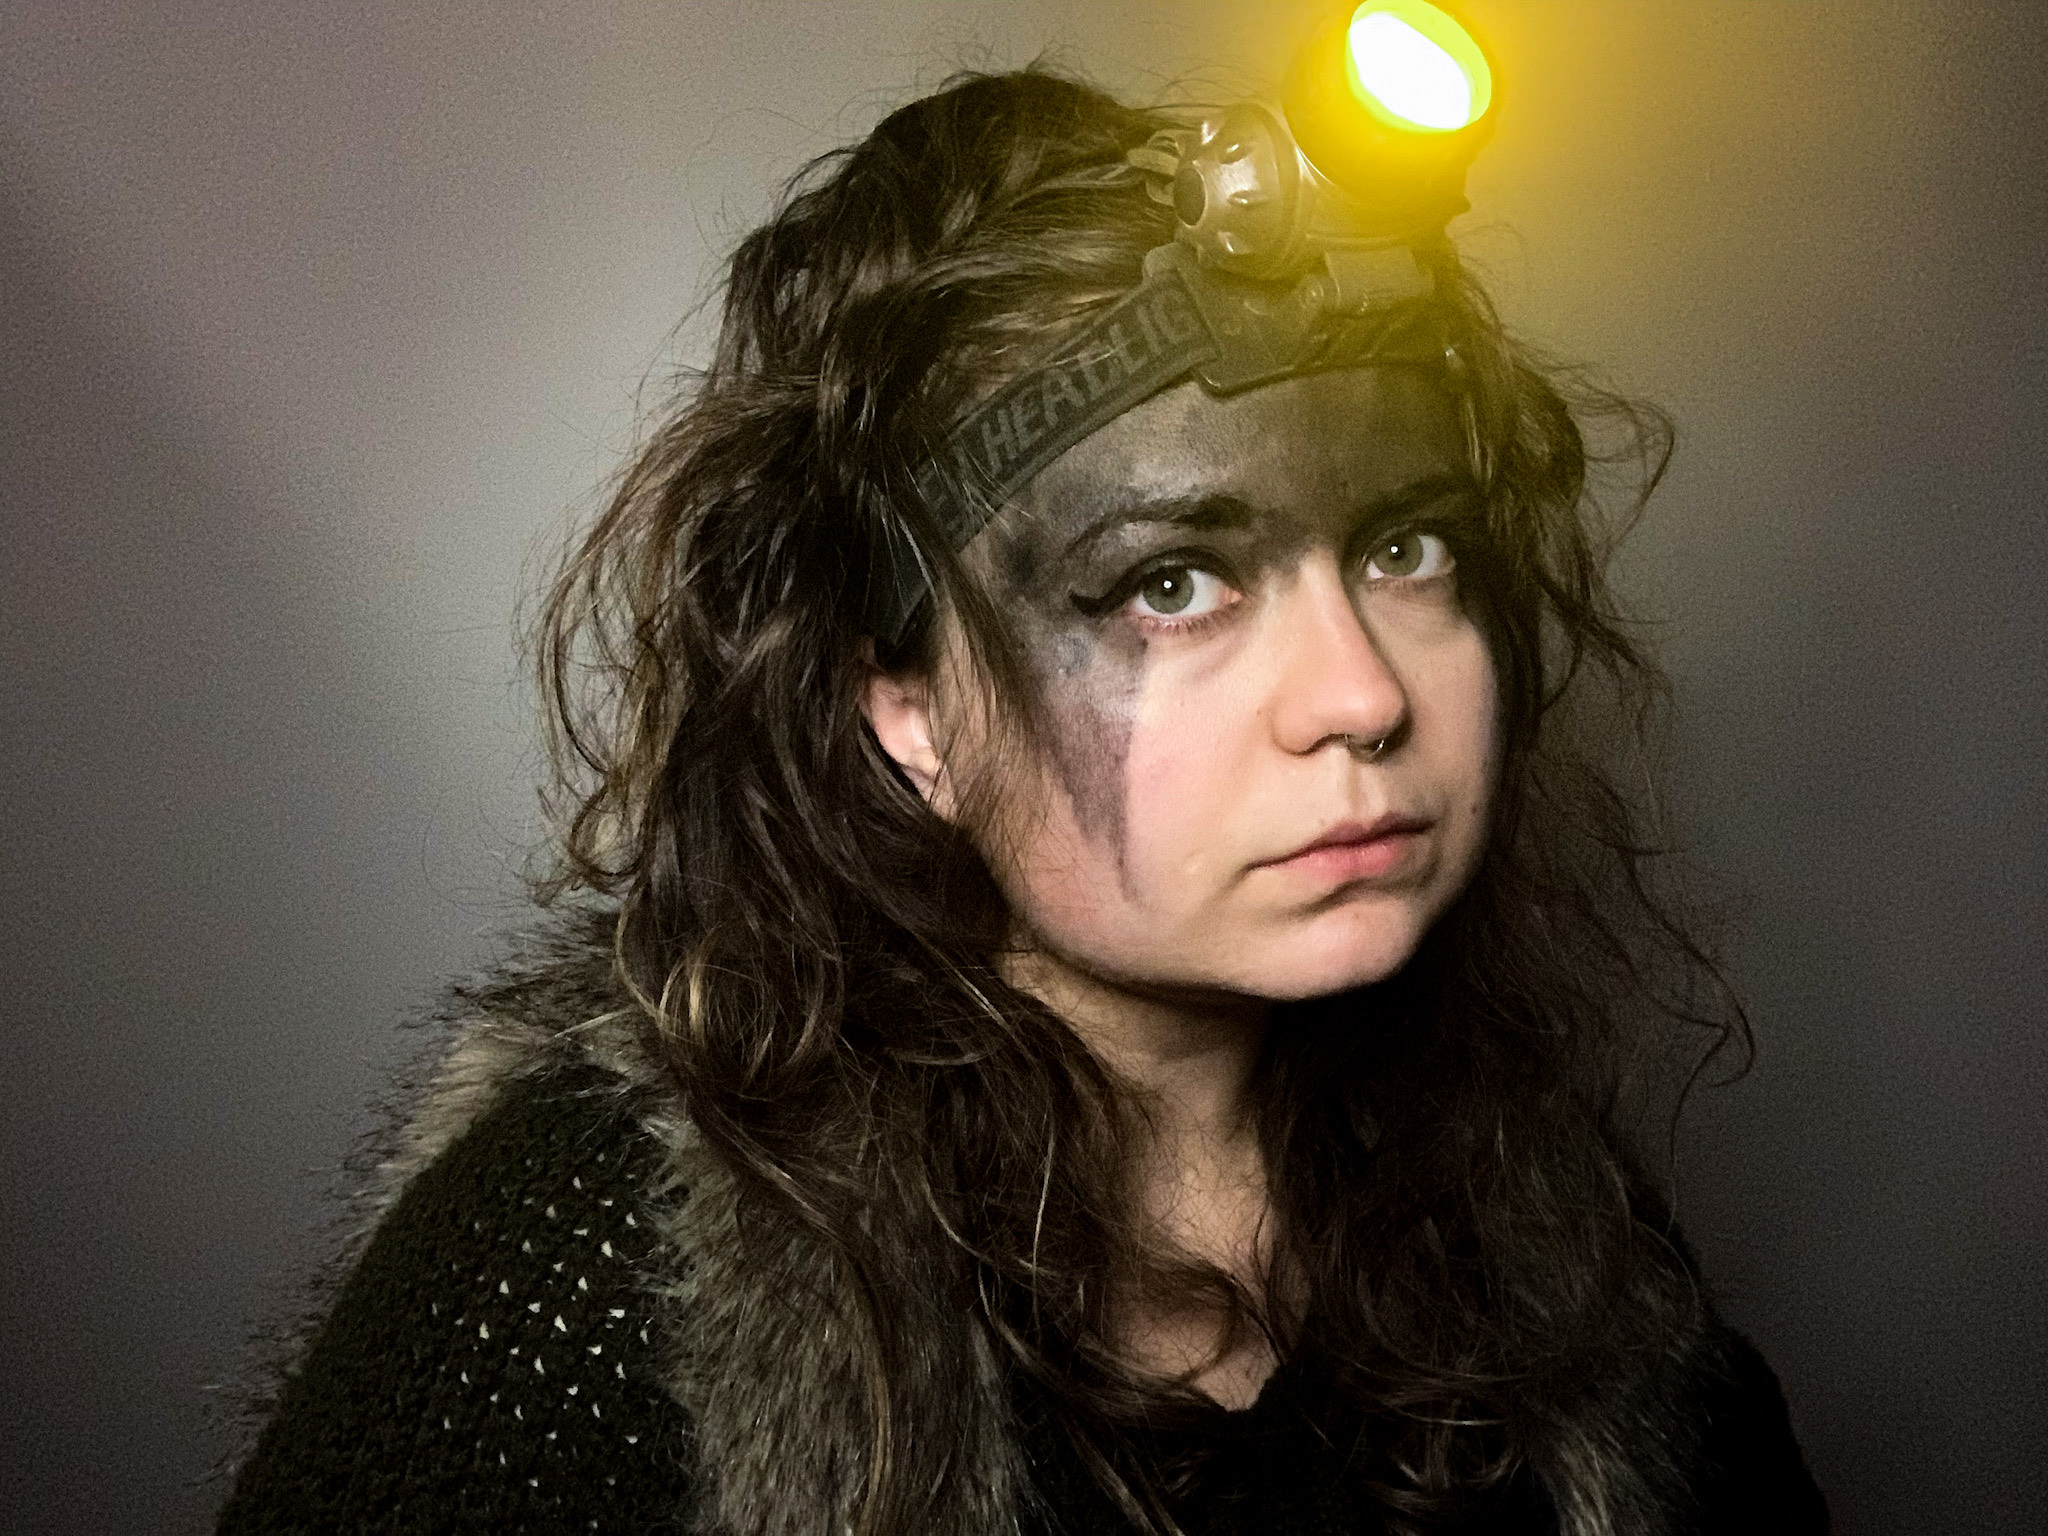 Zoë Rose, dressed in warm clothes and a headlamp, with coal dust smeared decoratively across her face, eyes the camera warily as Mel in the online revival of Electric Sun.